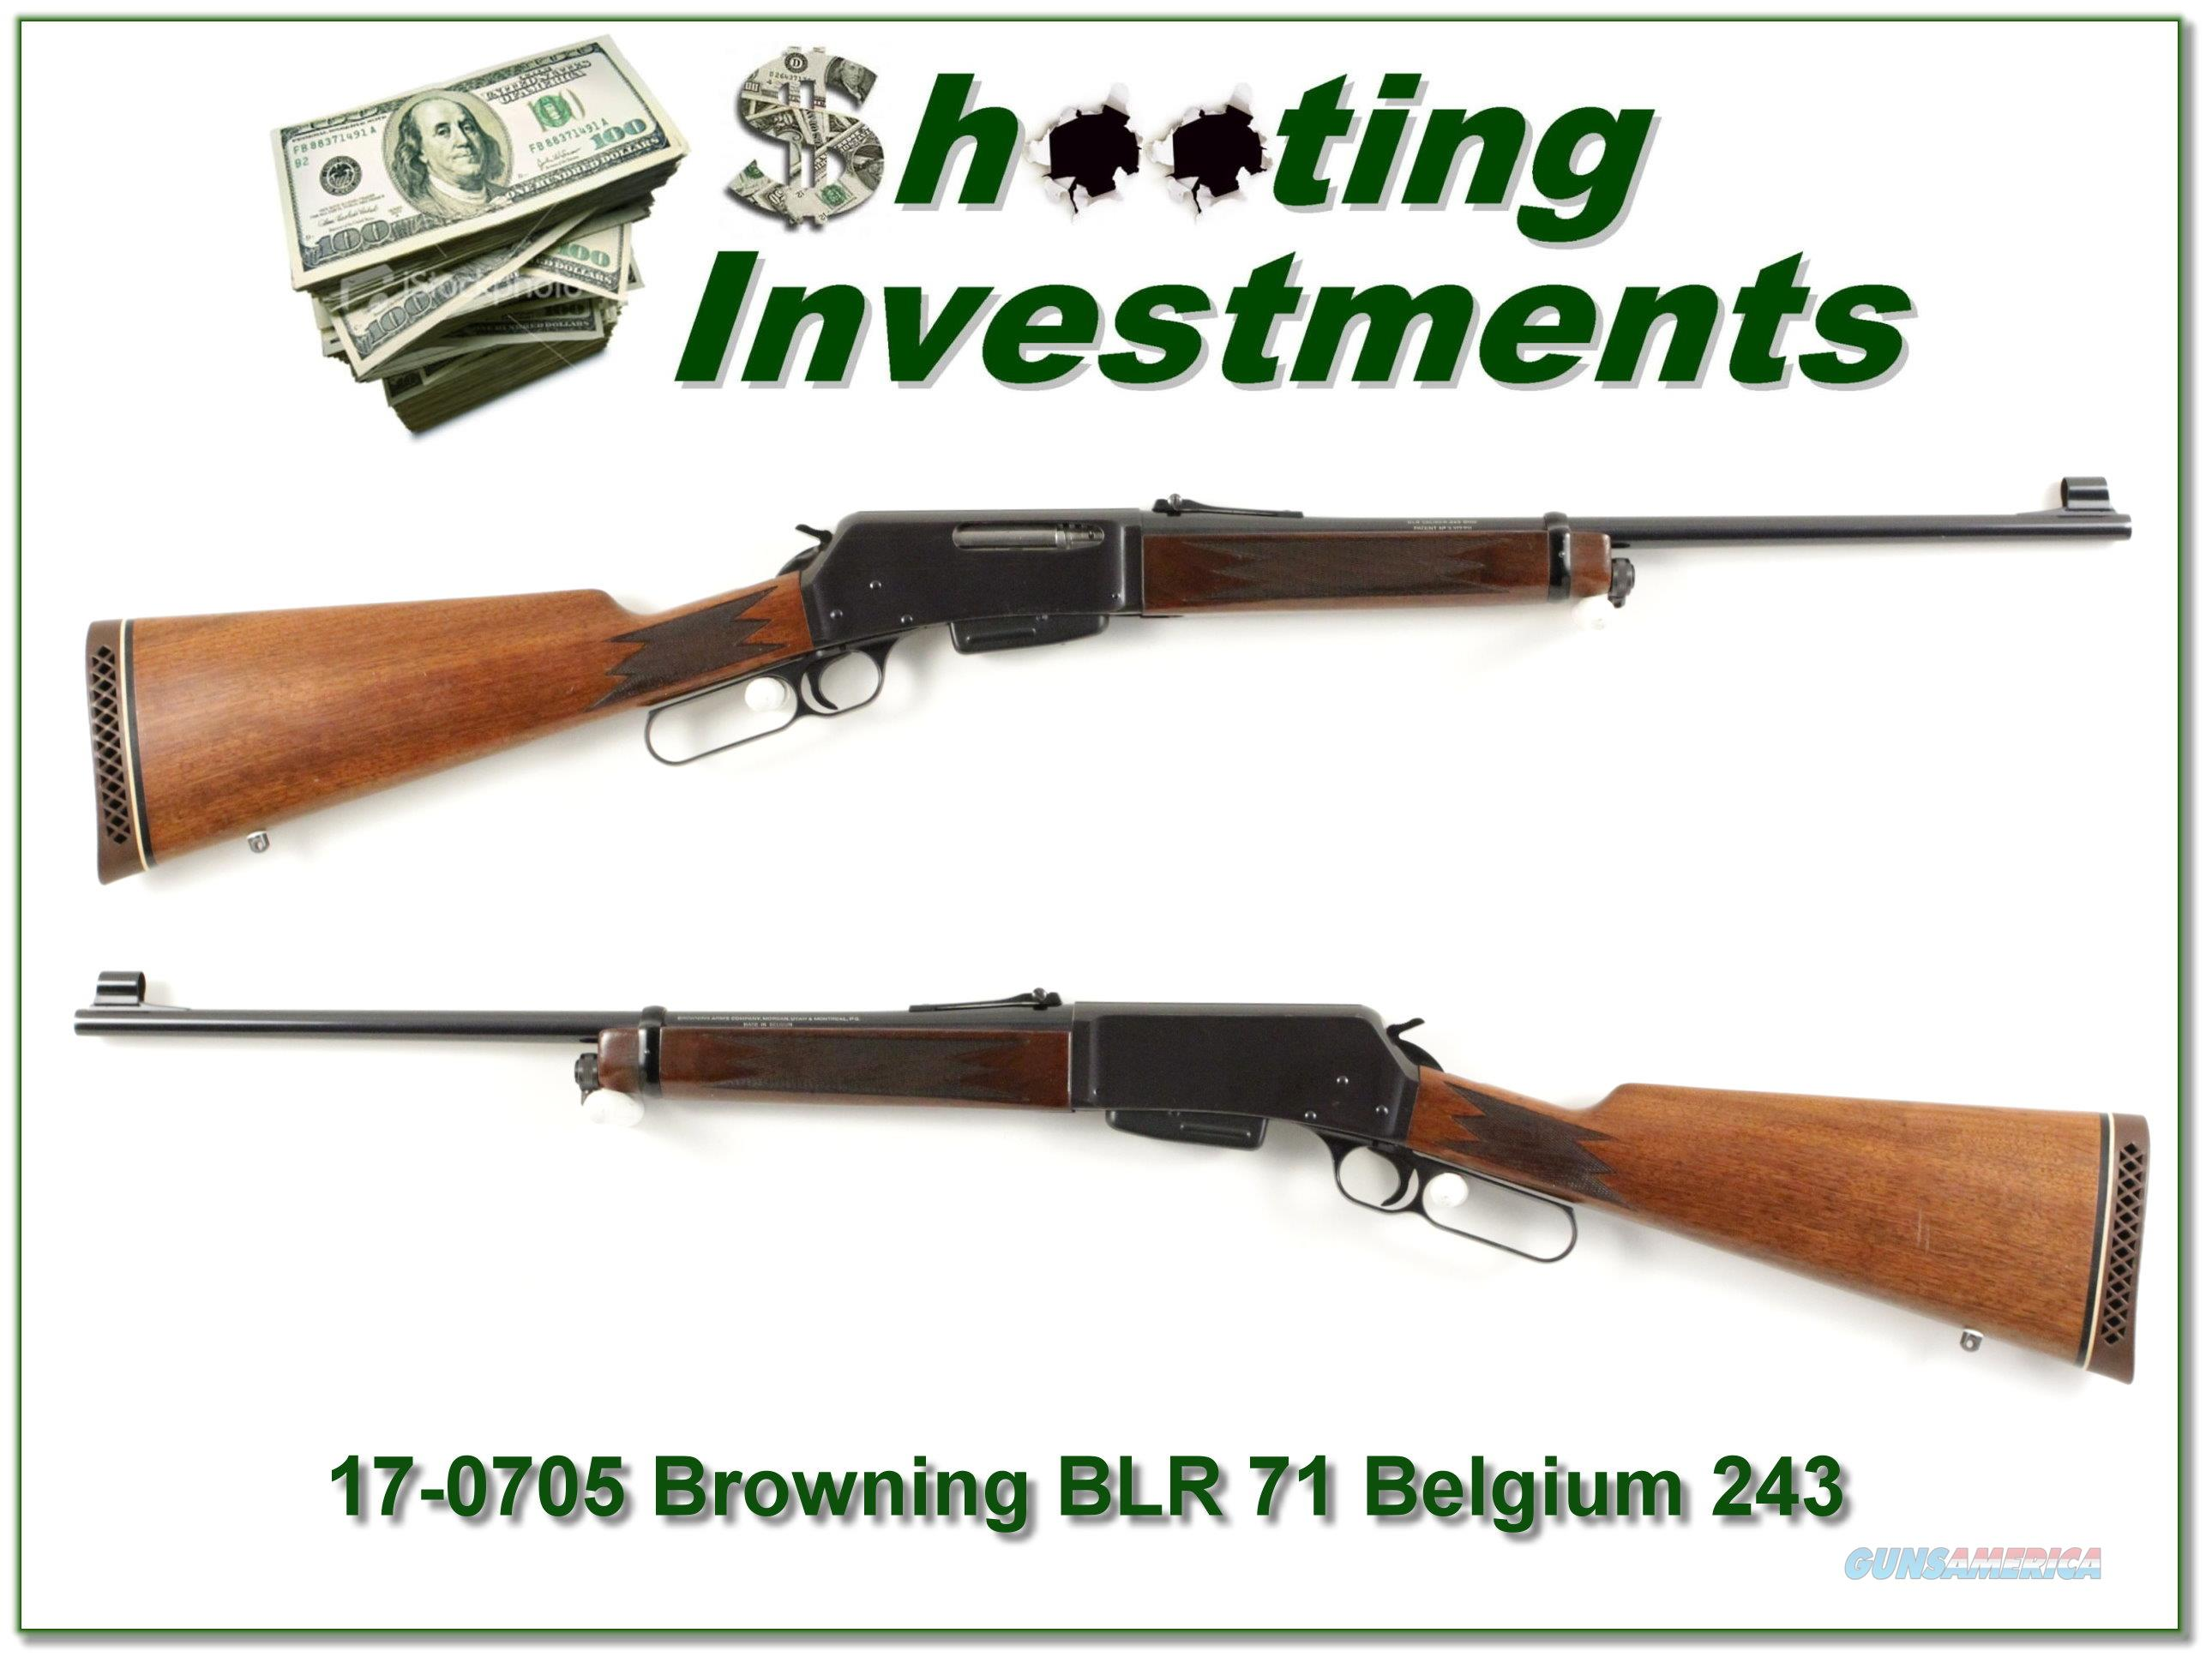 Browning BLR Belgium hard to find 243!  Guns > Rifles > Browning Rifles > Lever Action